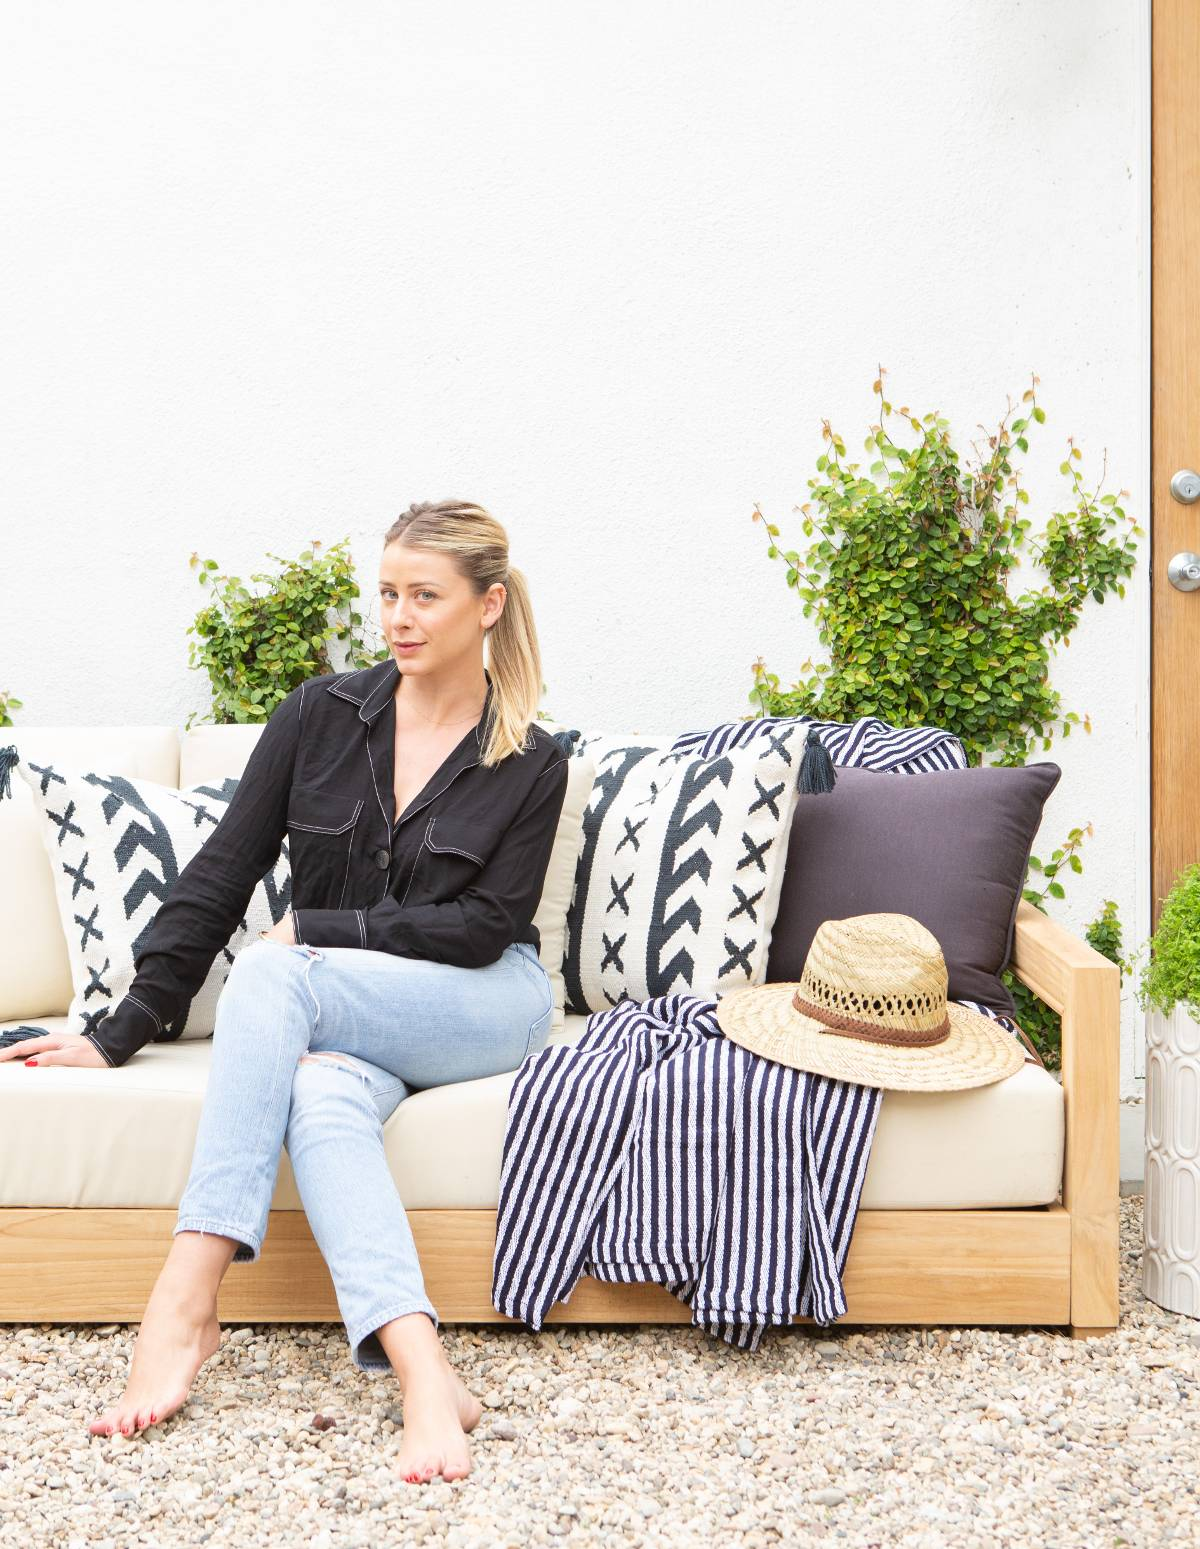 lo bosworth los angeles home 260537 1528989527012 image.1200x0c - A Casa da Lo Bosworth em LA